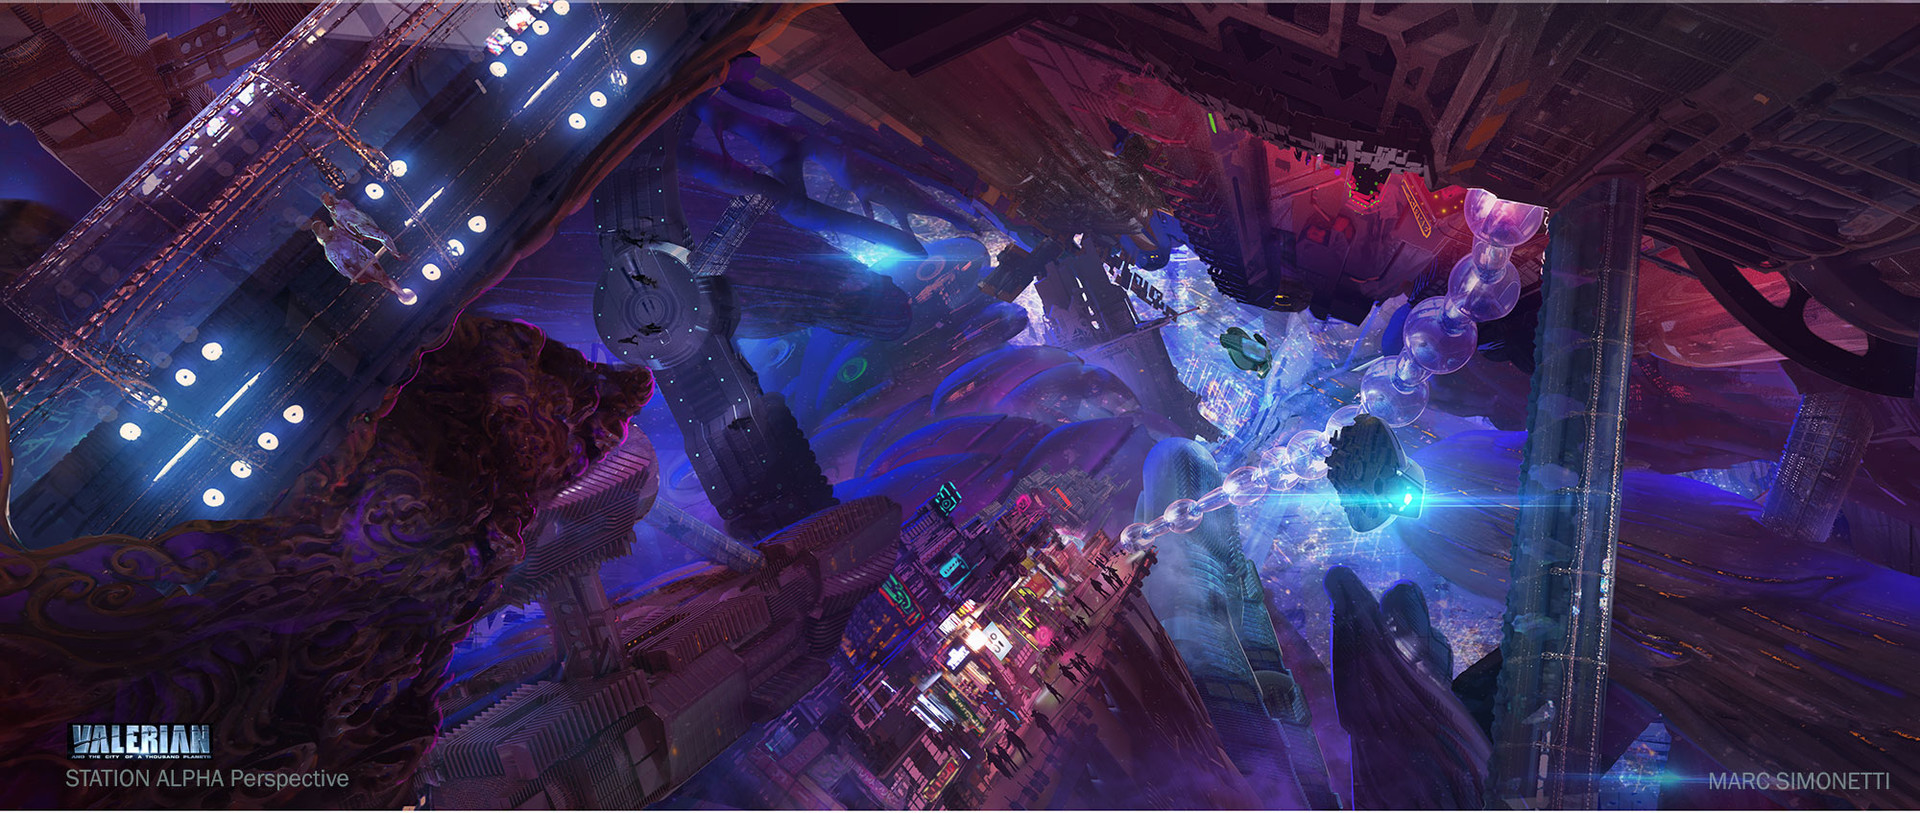 Marc Simonetti Digital Painting Valerian and the city of a thousand planets